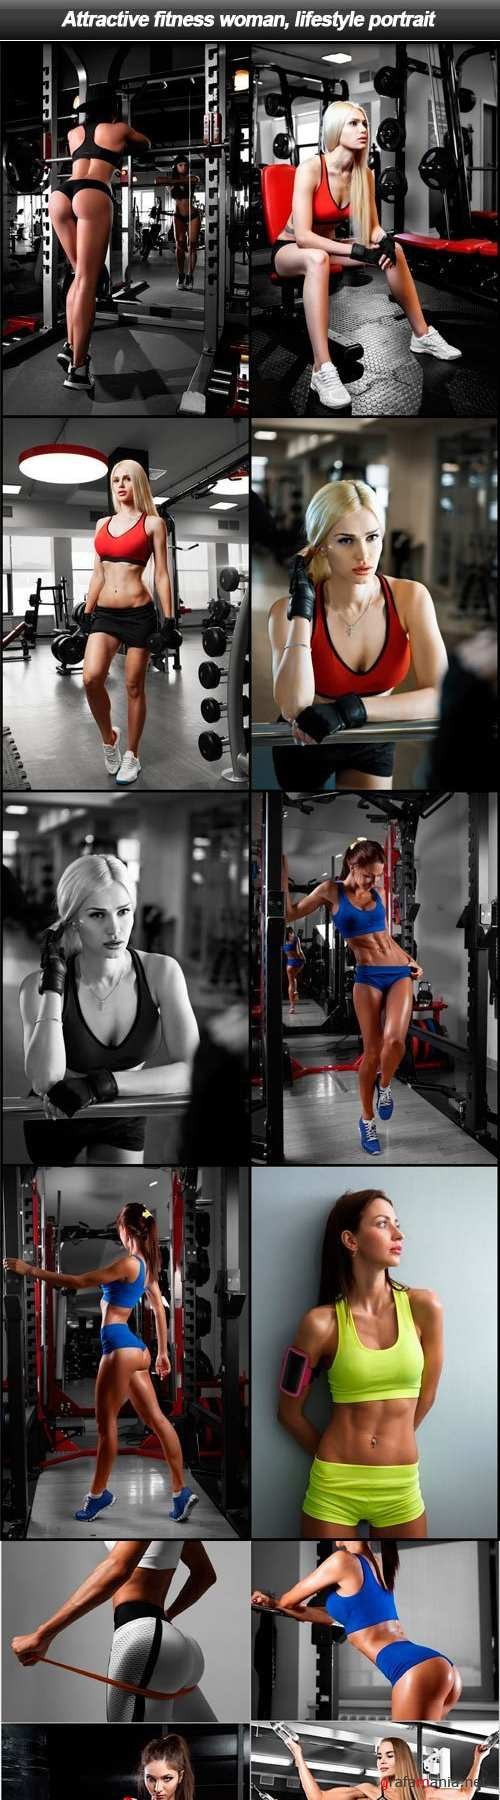 Attractive fitness woman, lifestyle portrait - 20 UHQ JPEG